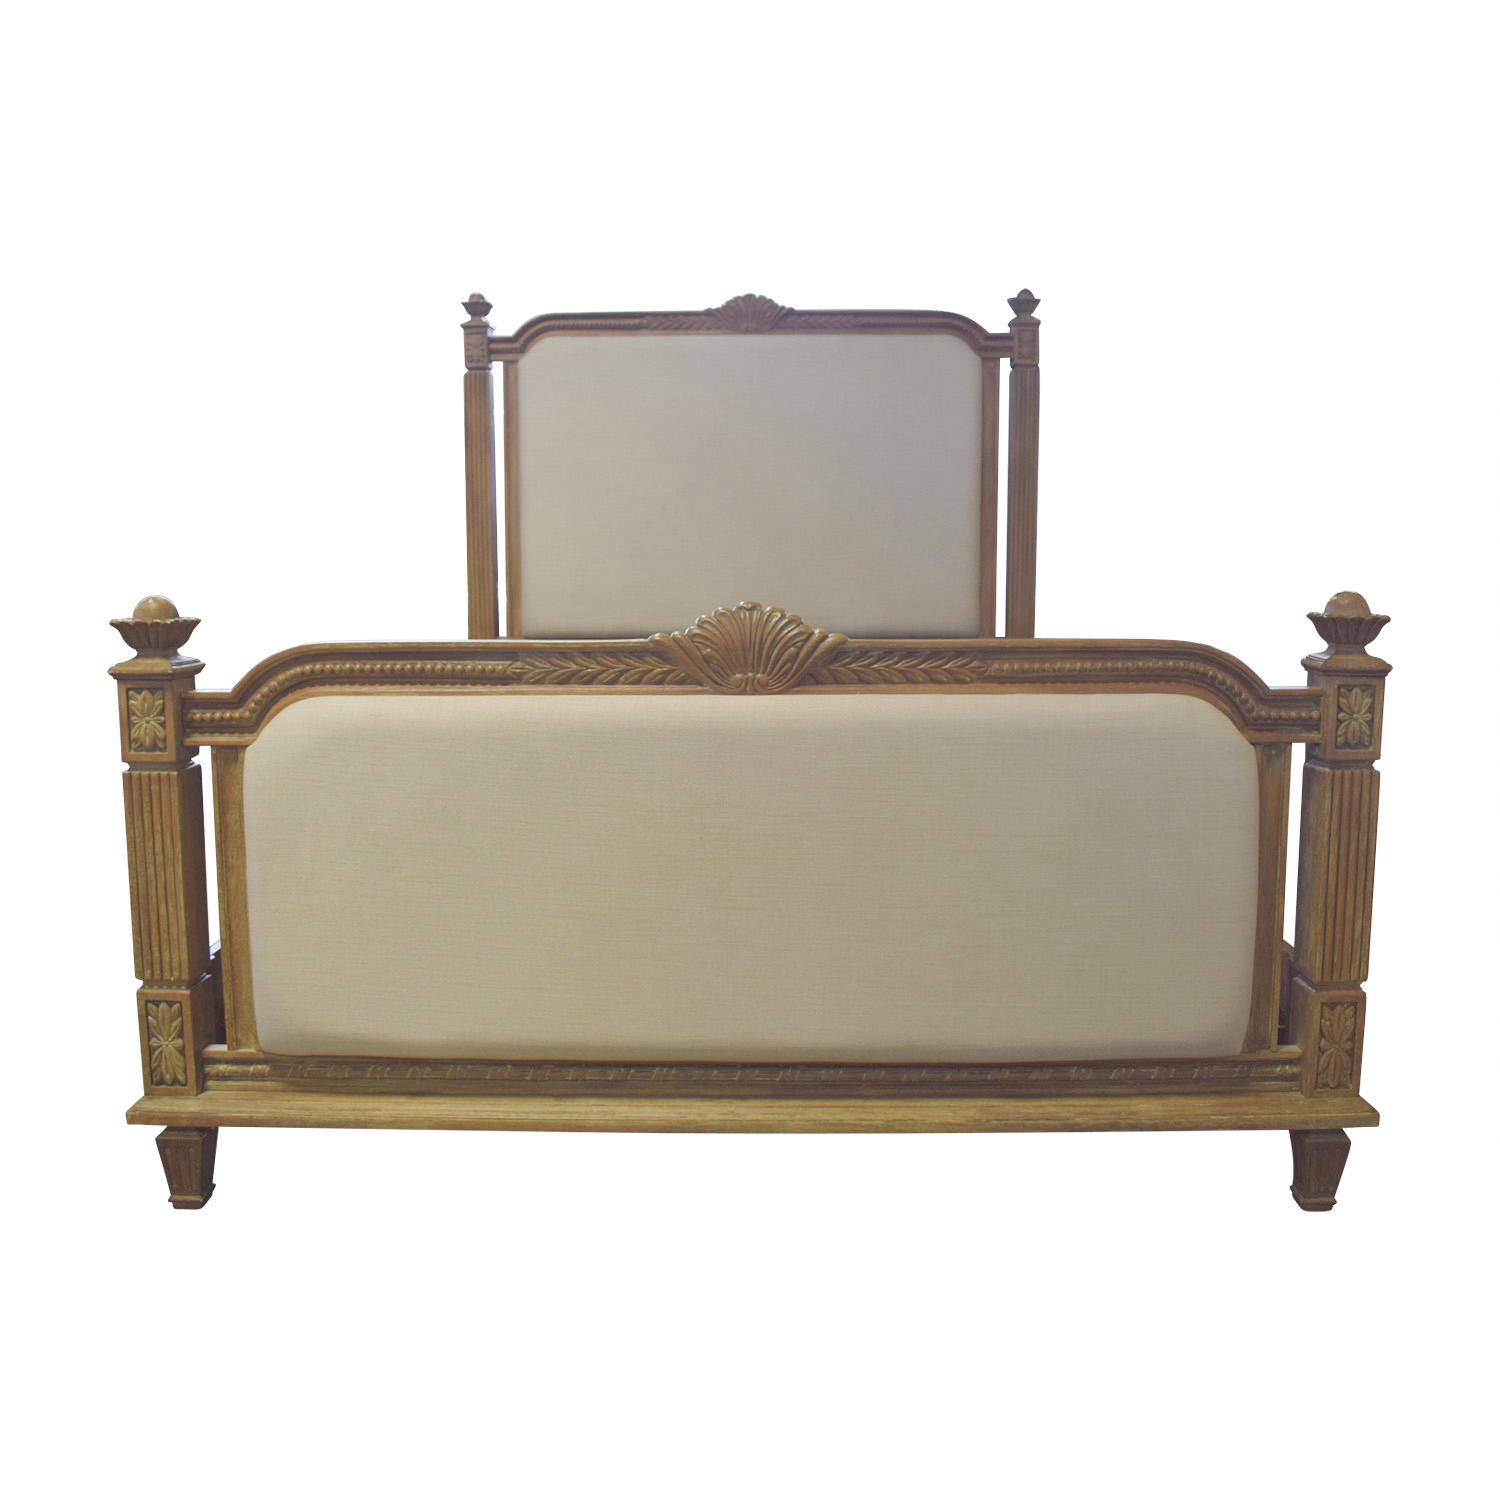 Raymour & Flanigan Raymour & Flanigan Whitmore Beige Queen Bed Frame nyc